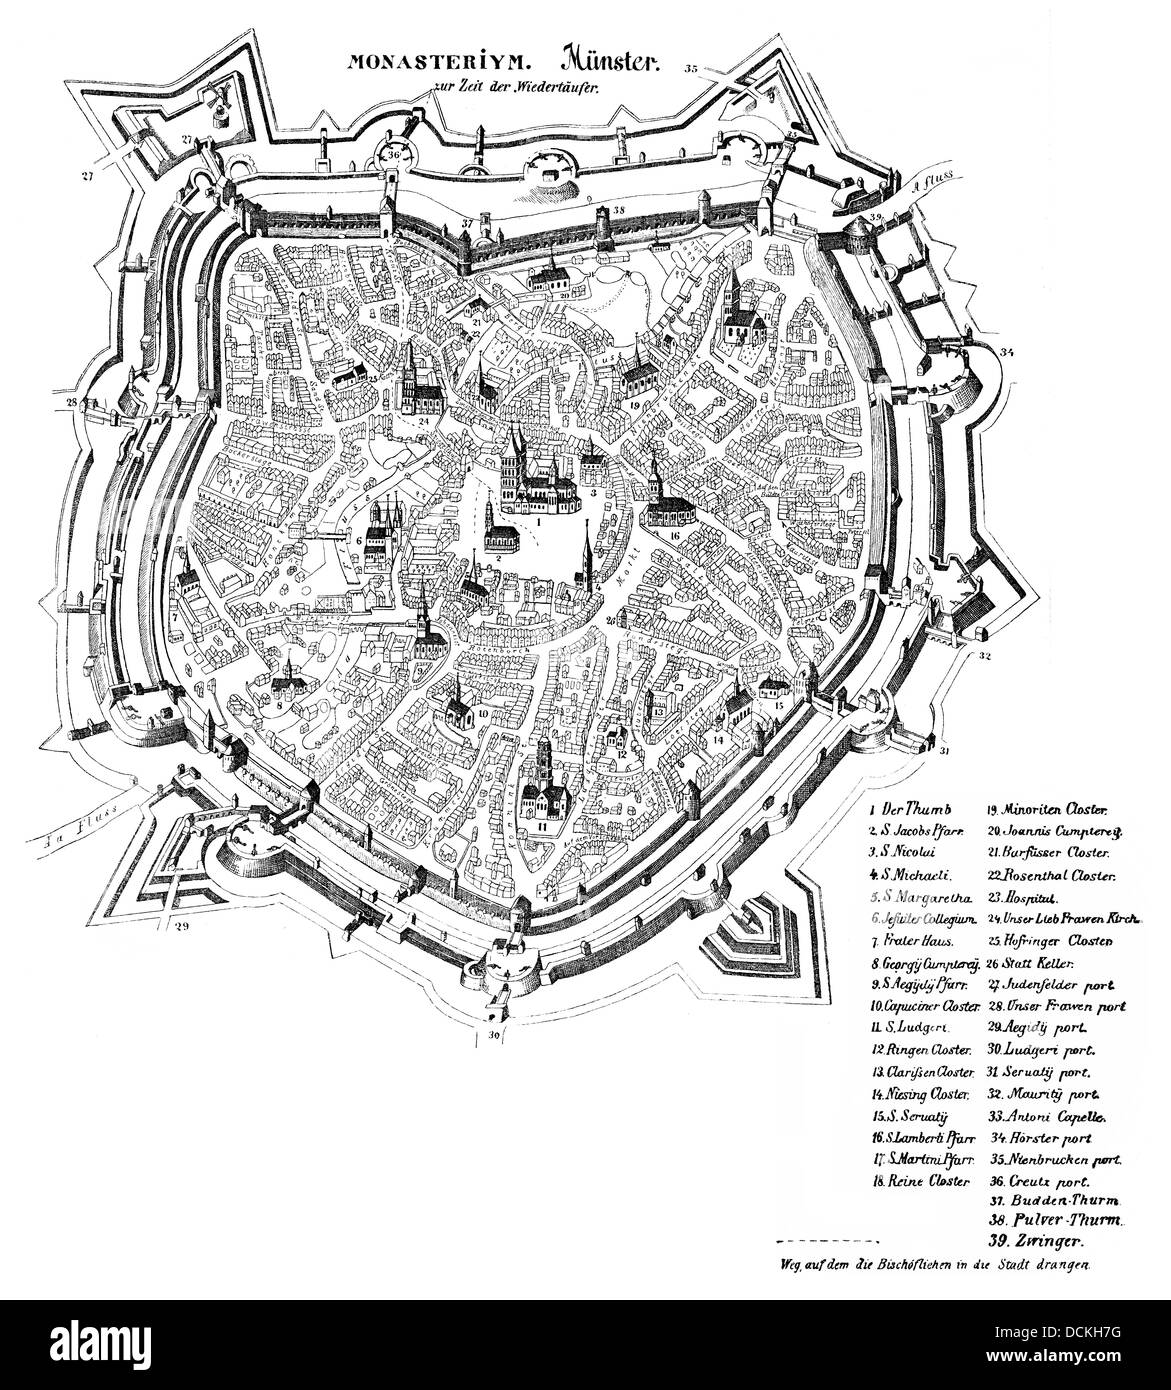 Map Of Muenster In The Th Century At The Time Of The Anabaptists - Germany map munster